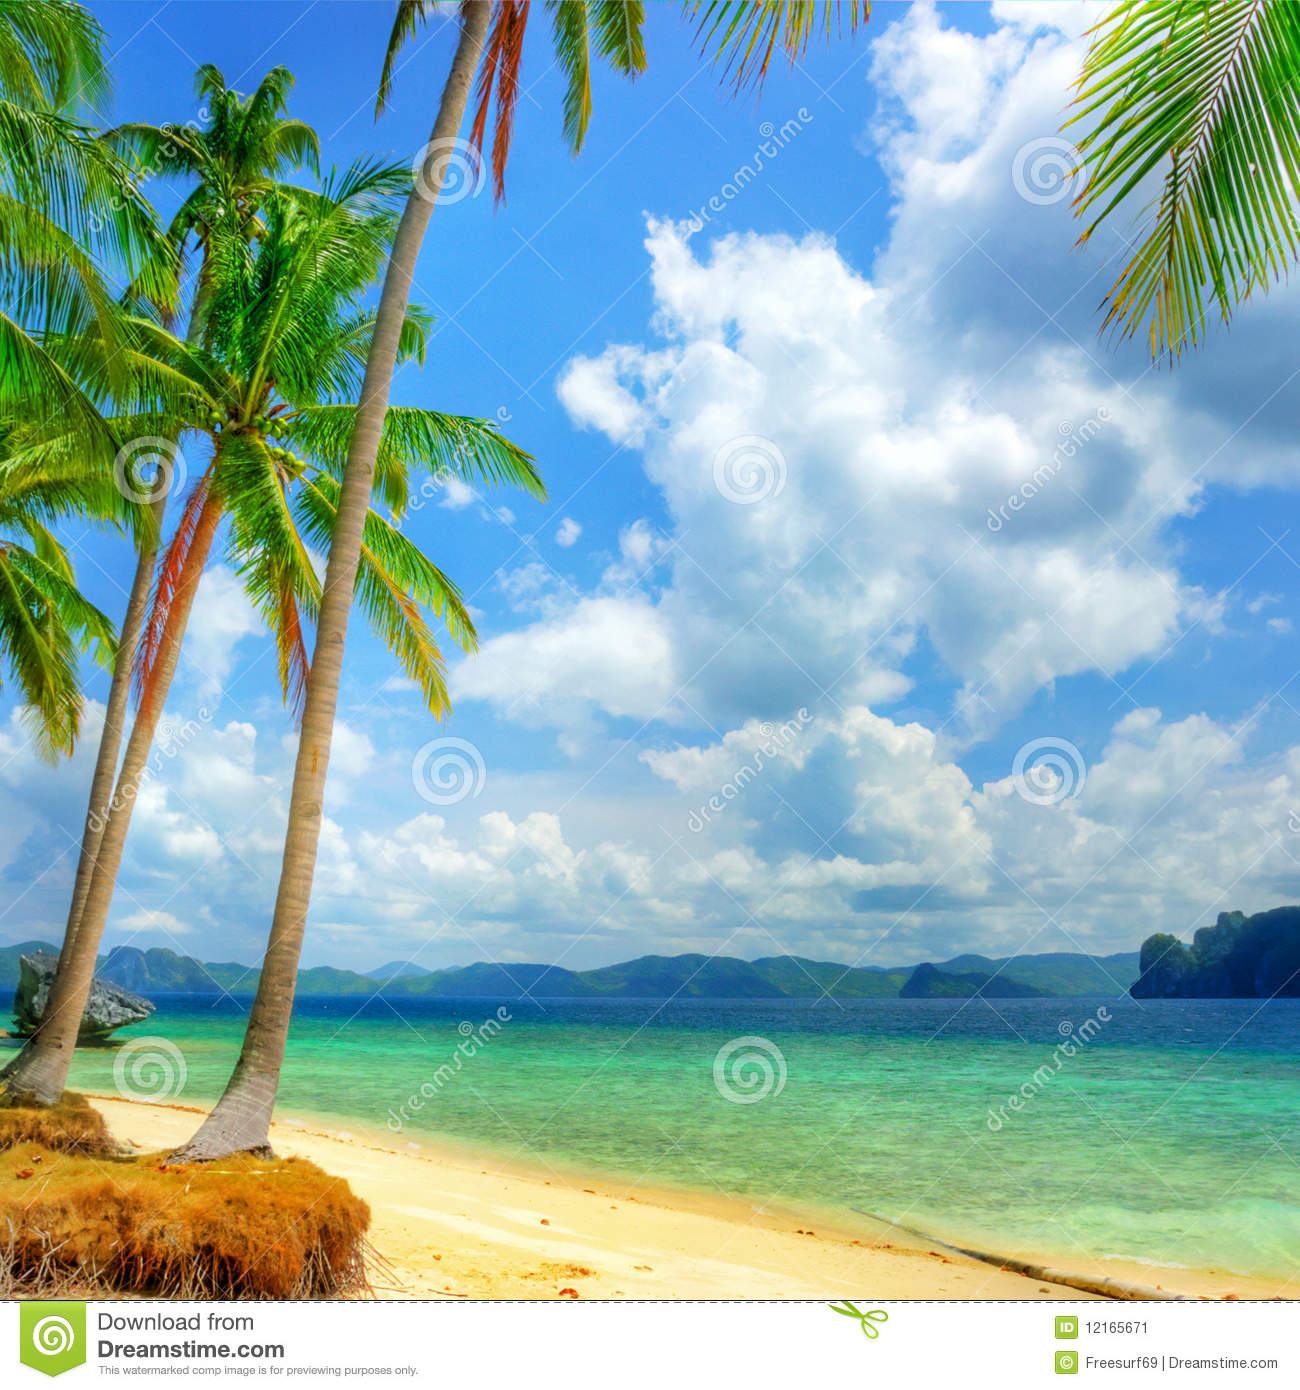 Tropical Beach And Peaceful Ocean: Pure Tropics Stock Image